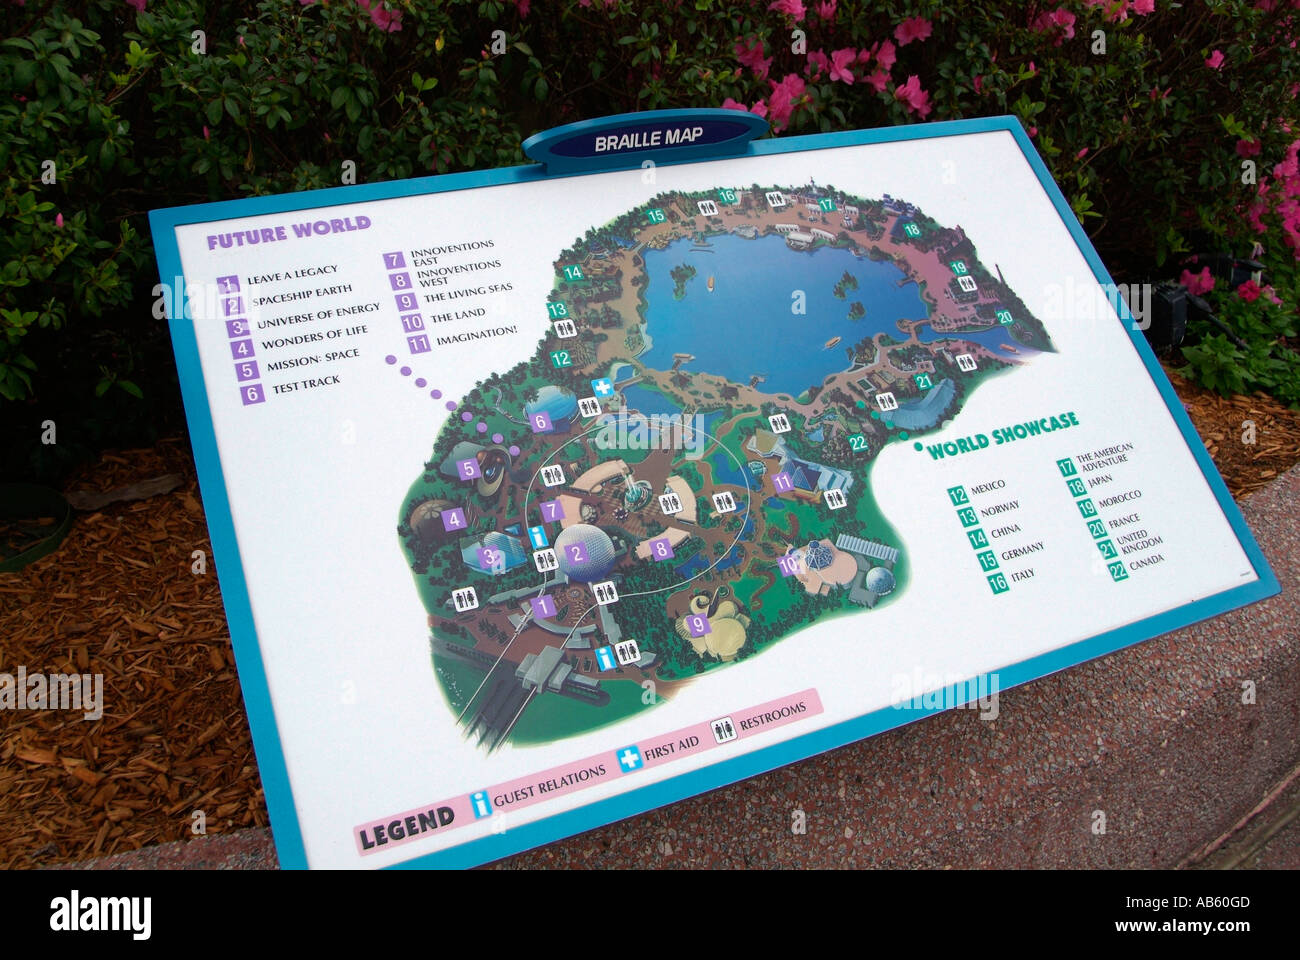 Disney park map stock photos disney park map stock images alamy map directions in braille at the epcot center at walt disney world theme park orlando florida gumiabroncs Image collections